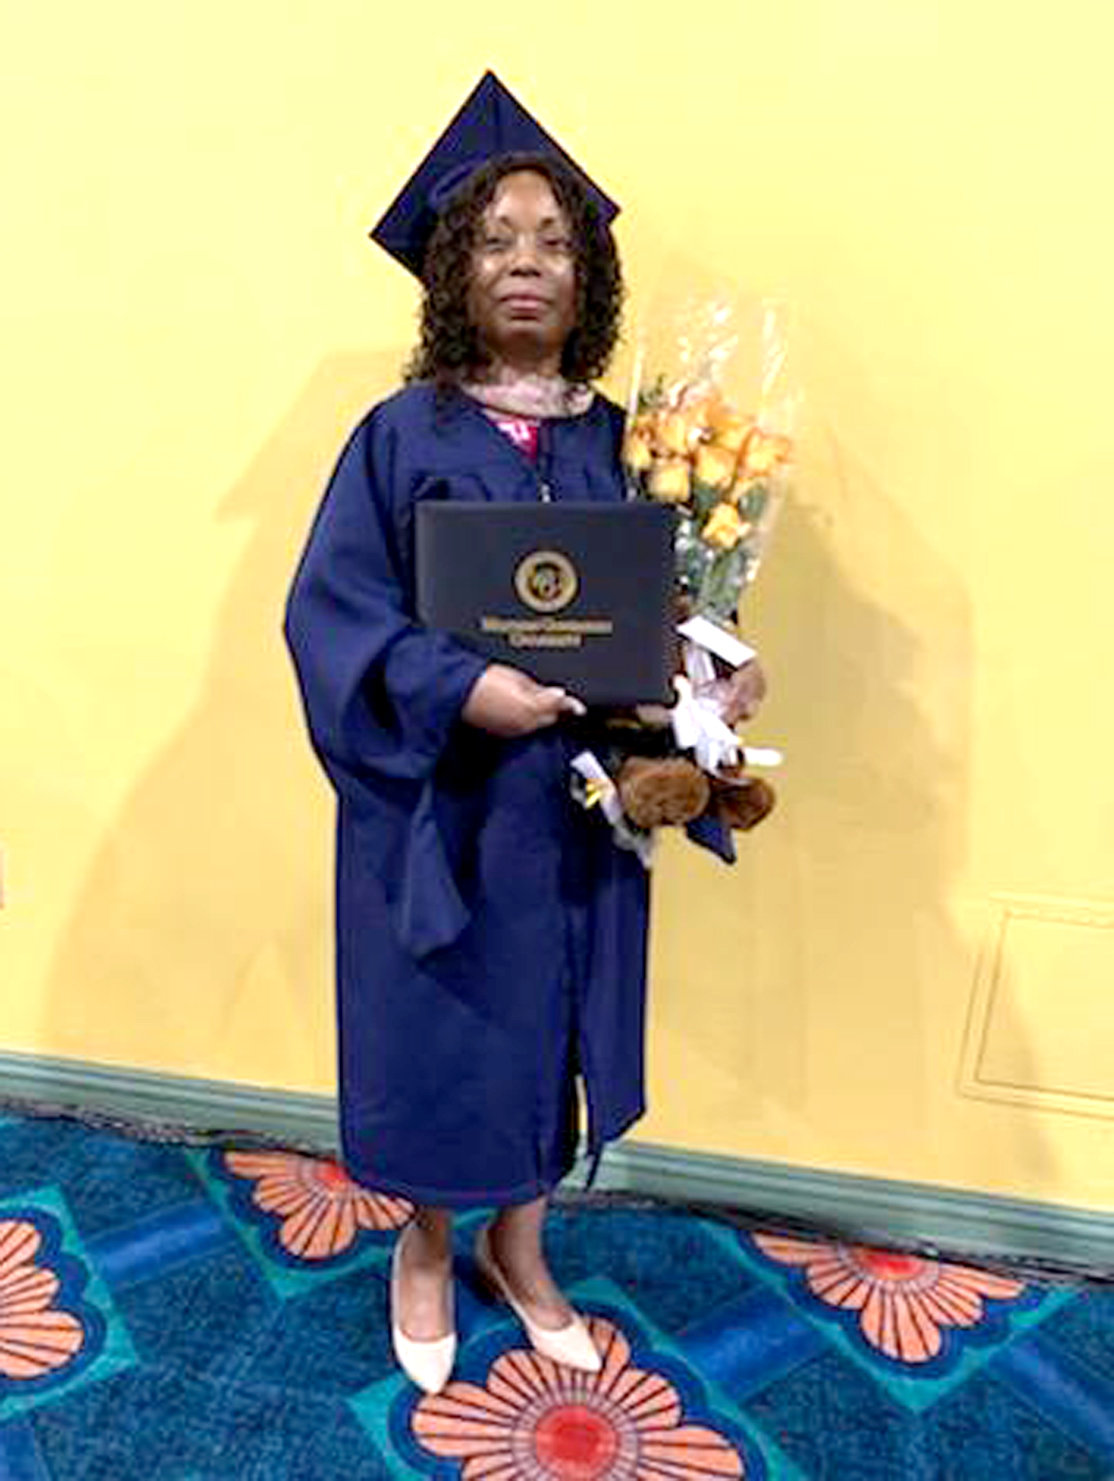 Cleveland's Townsend goes to Orlando to walk in WGU college